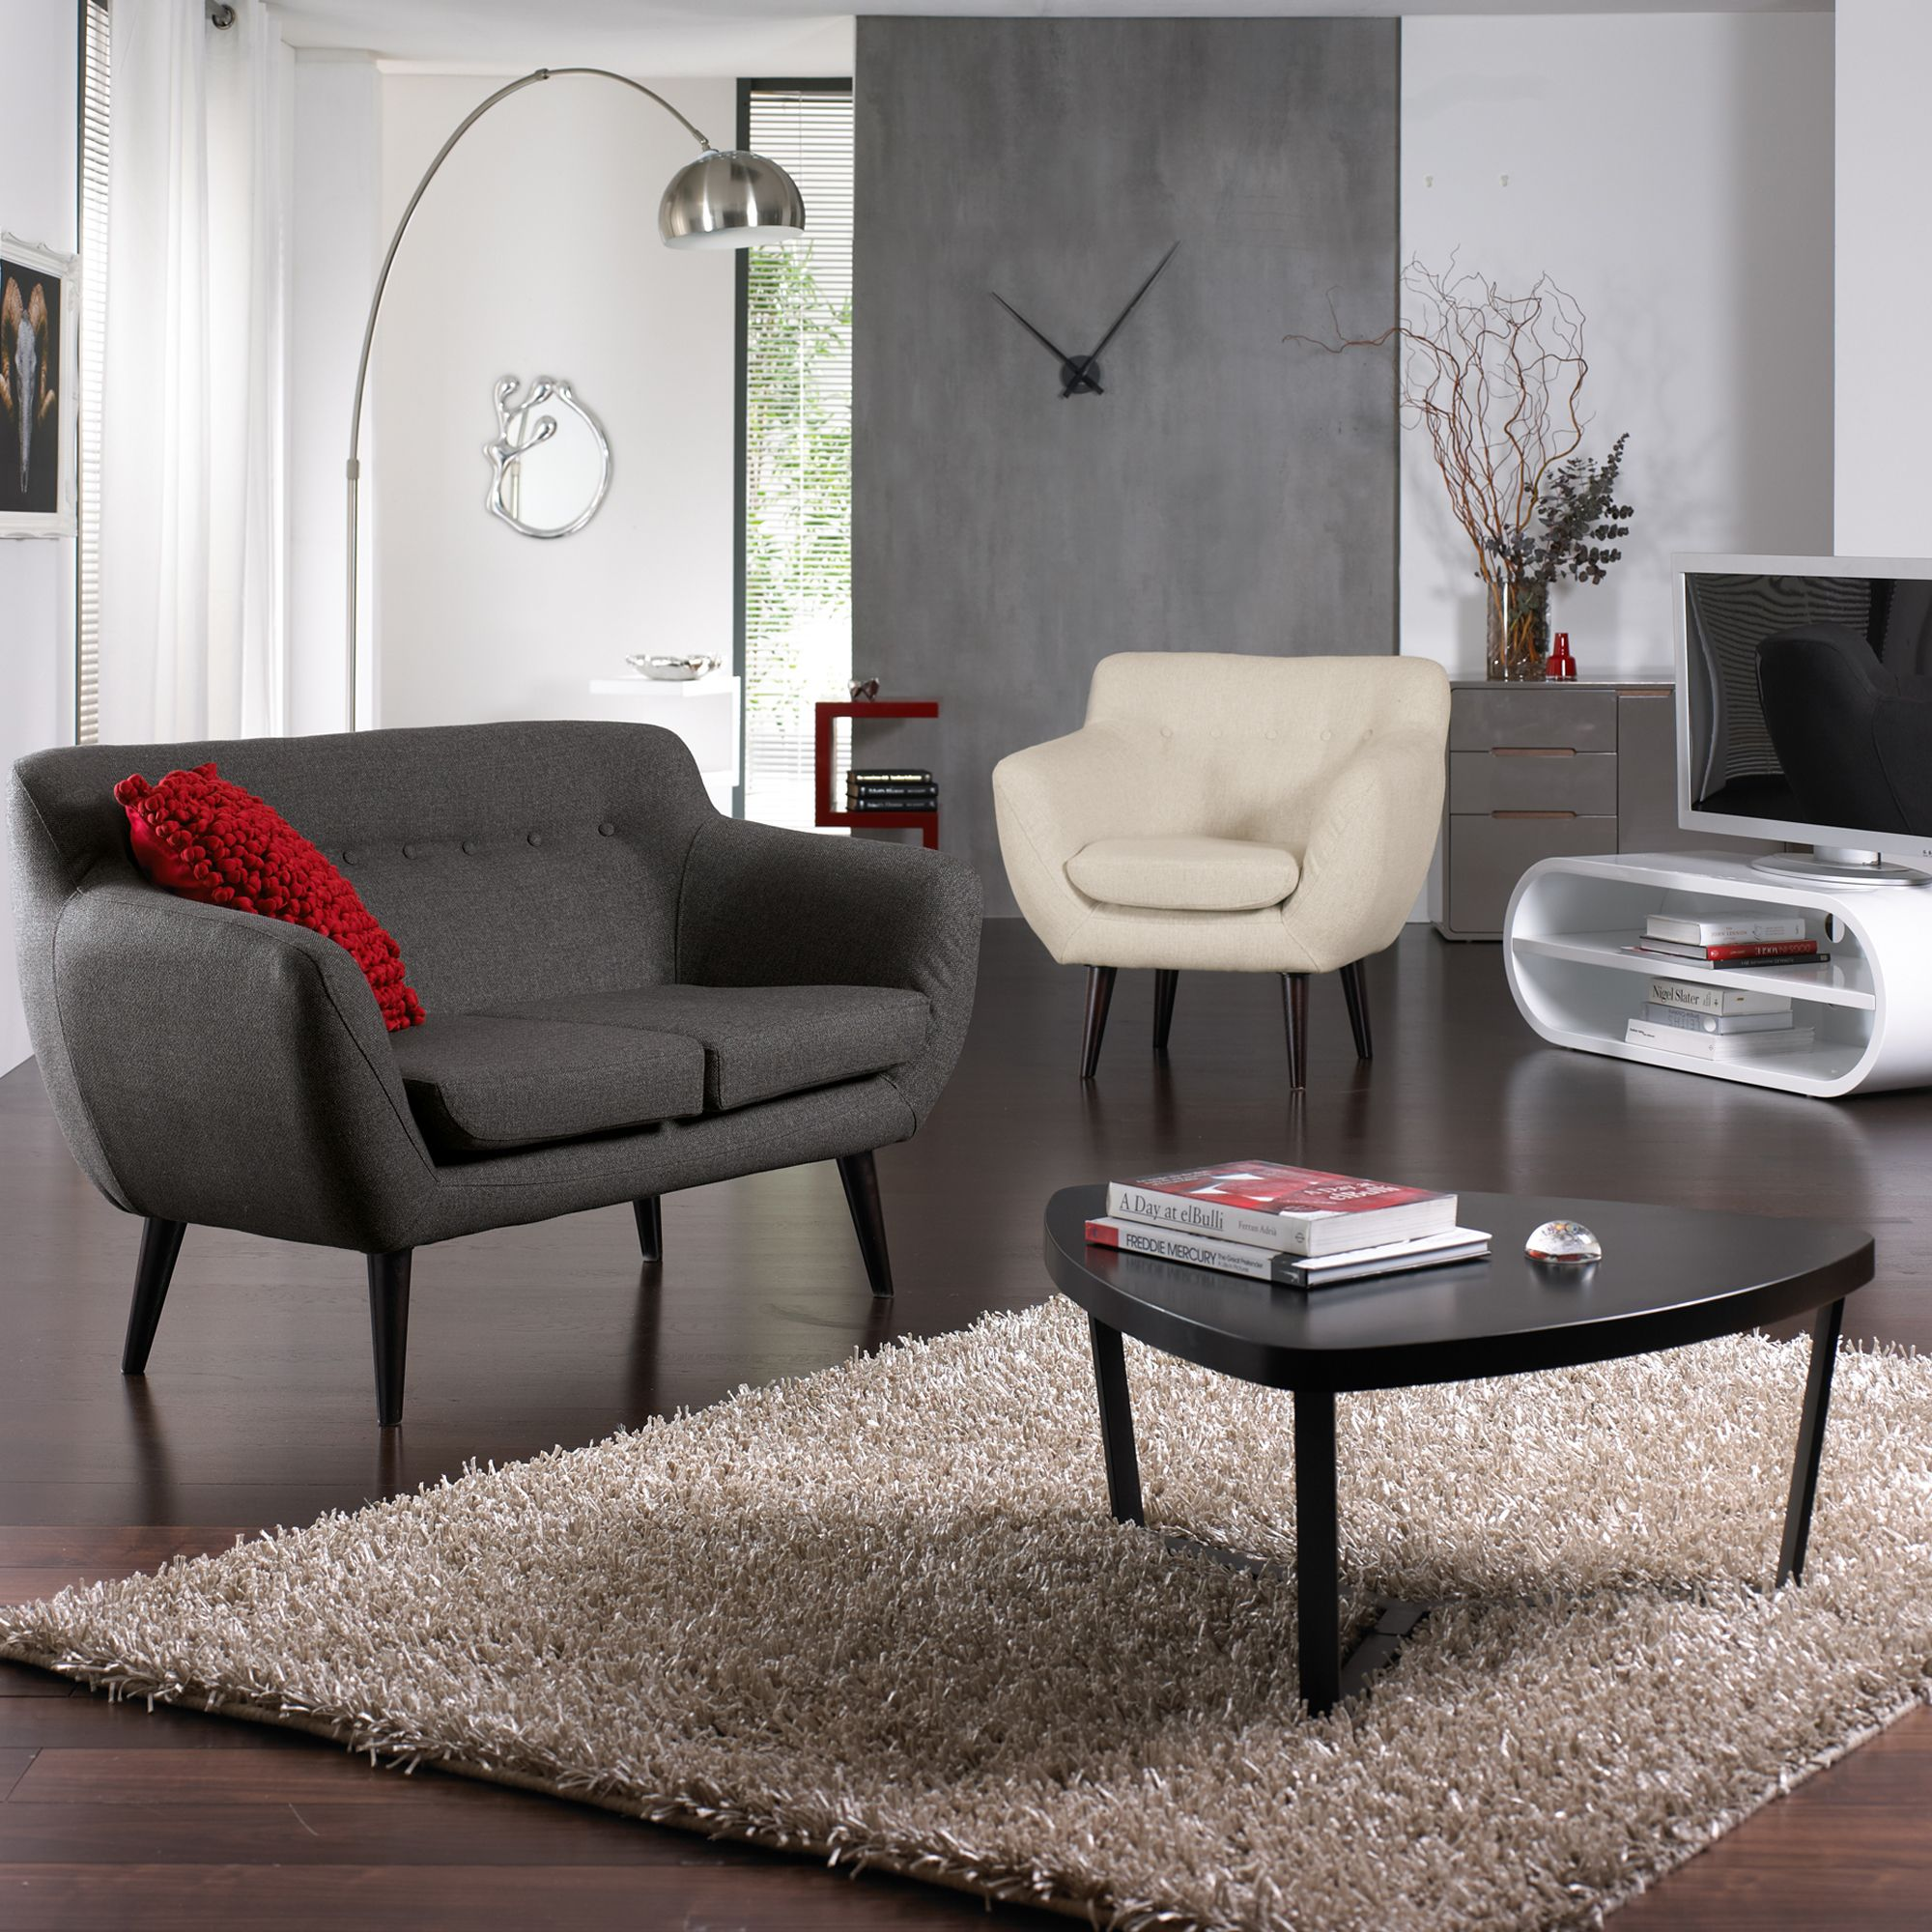 Curved lines angled legs and button detail make the retro trend